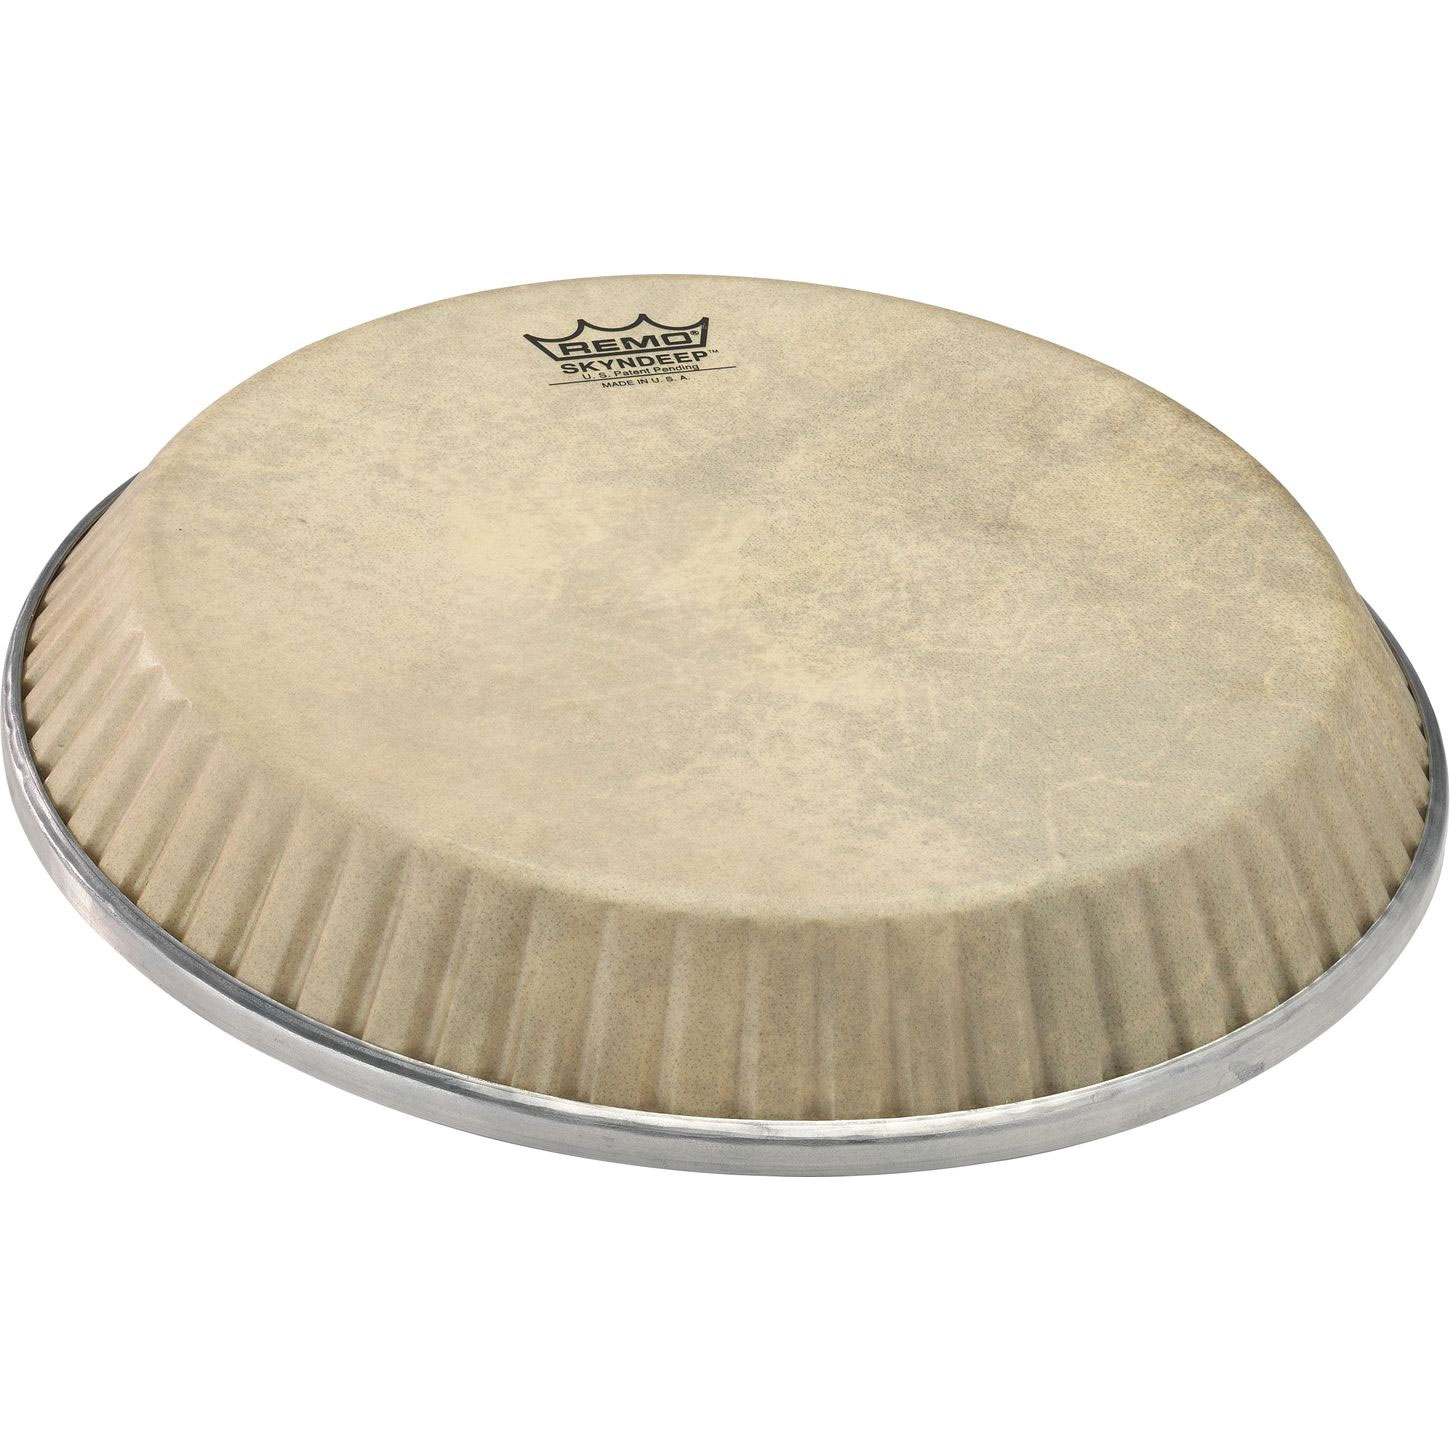 """Remo 11.06"""" Symmetry Skyndeep Conga Drum Head (D1 Collar) with Calfskin Graphic"""